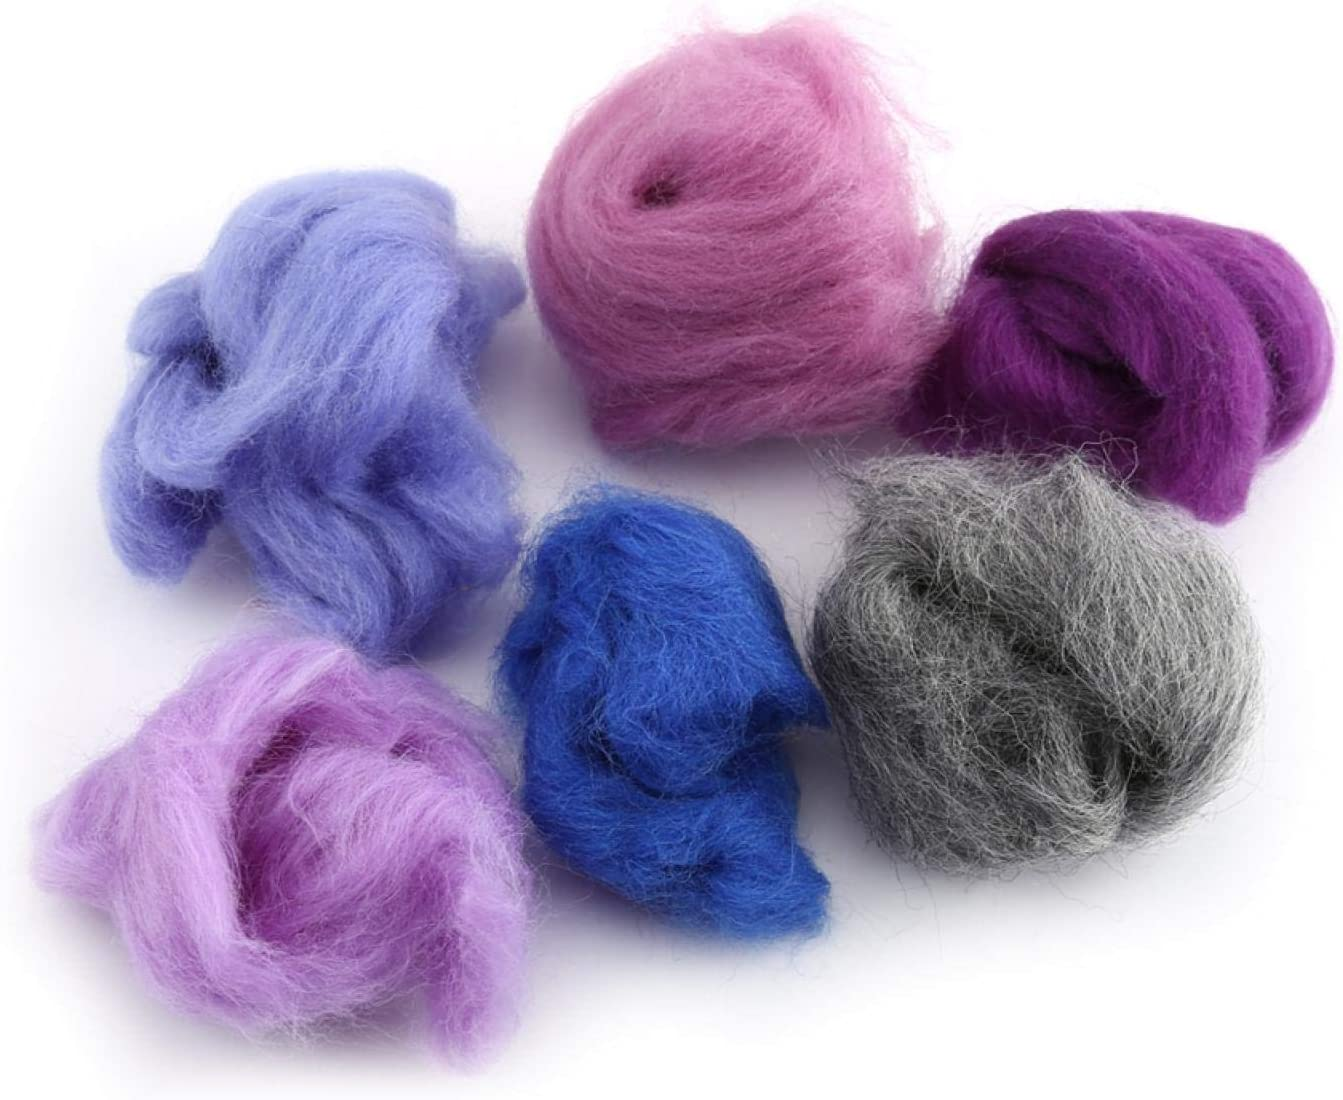 Vbestlife 36 Colors Wool Fiber Fe Challenge Credence the lowest price of Japan ☆ Roving Needle roving Dyed